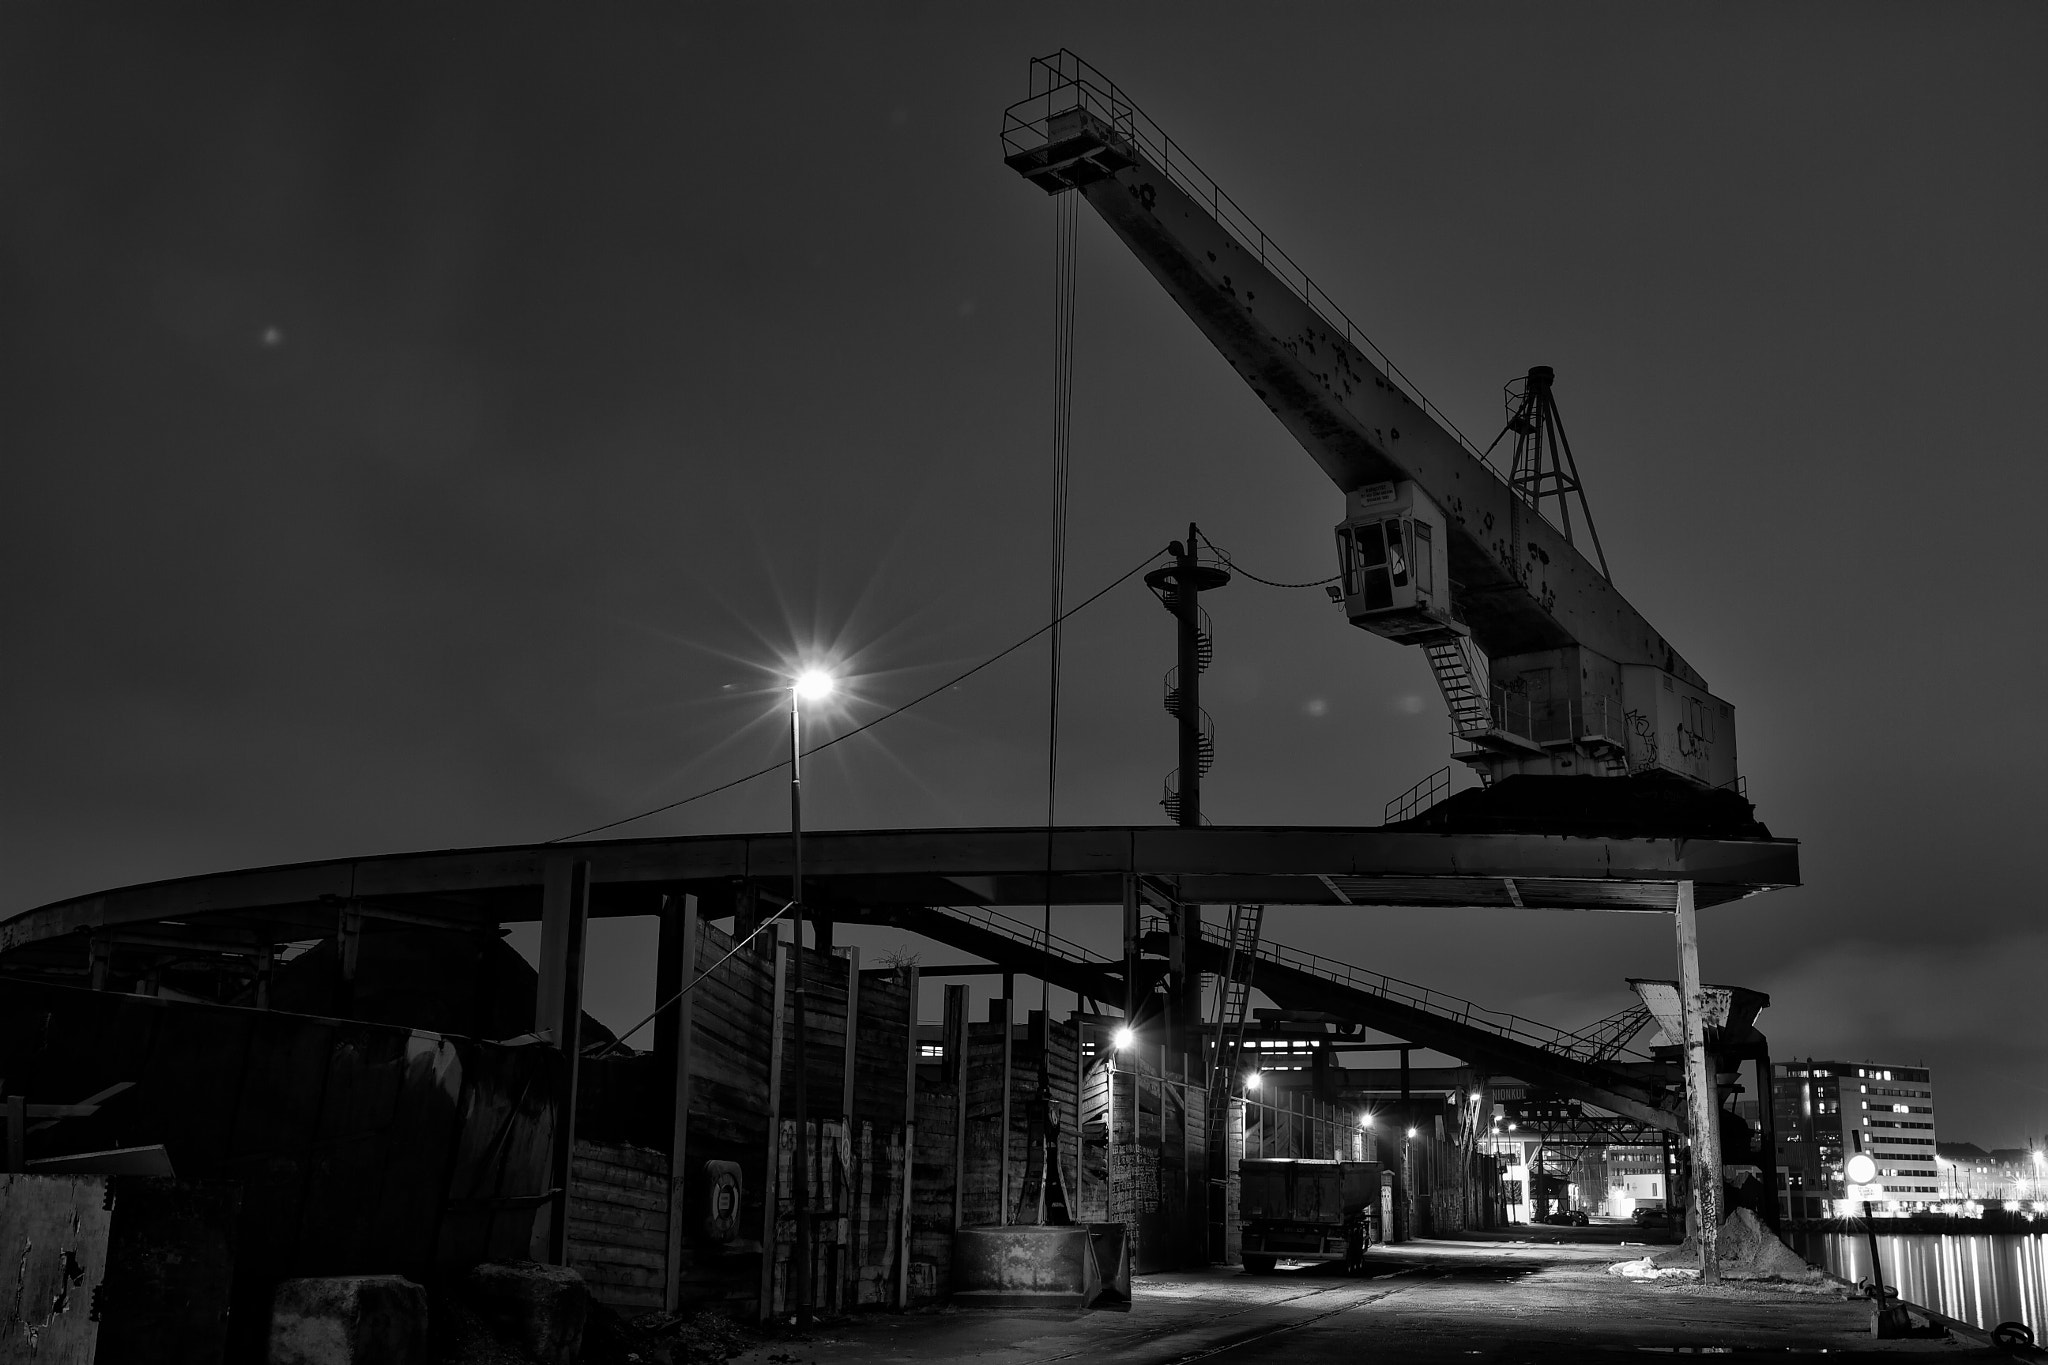 Photograph Light at the shipyard by Mikael Klint on 500px